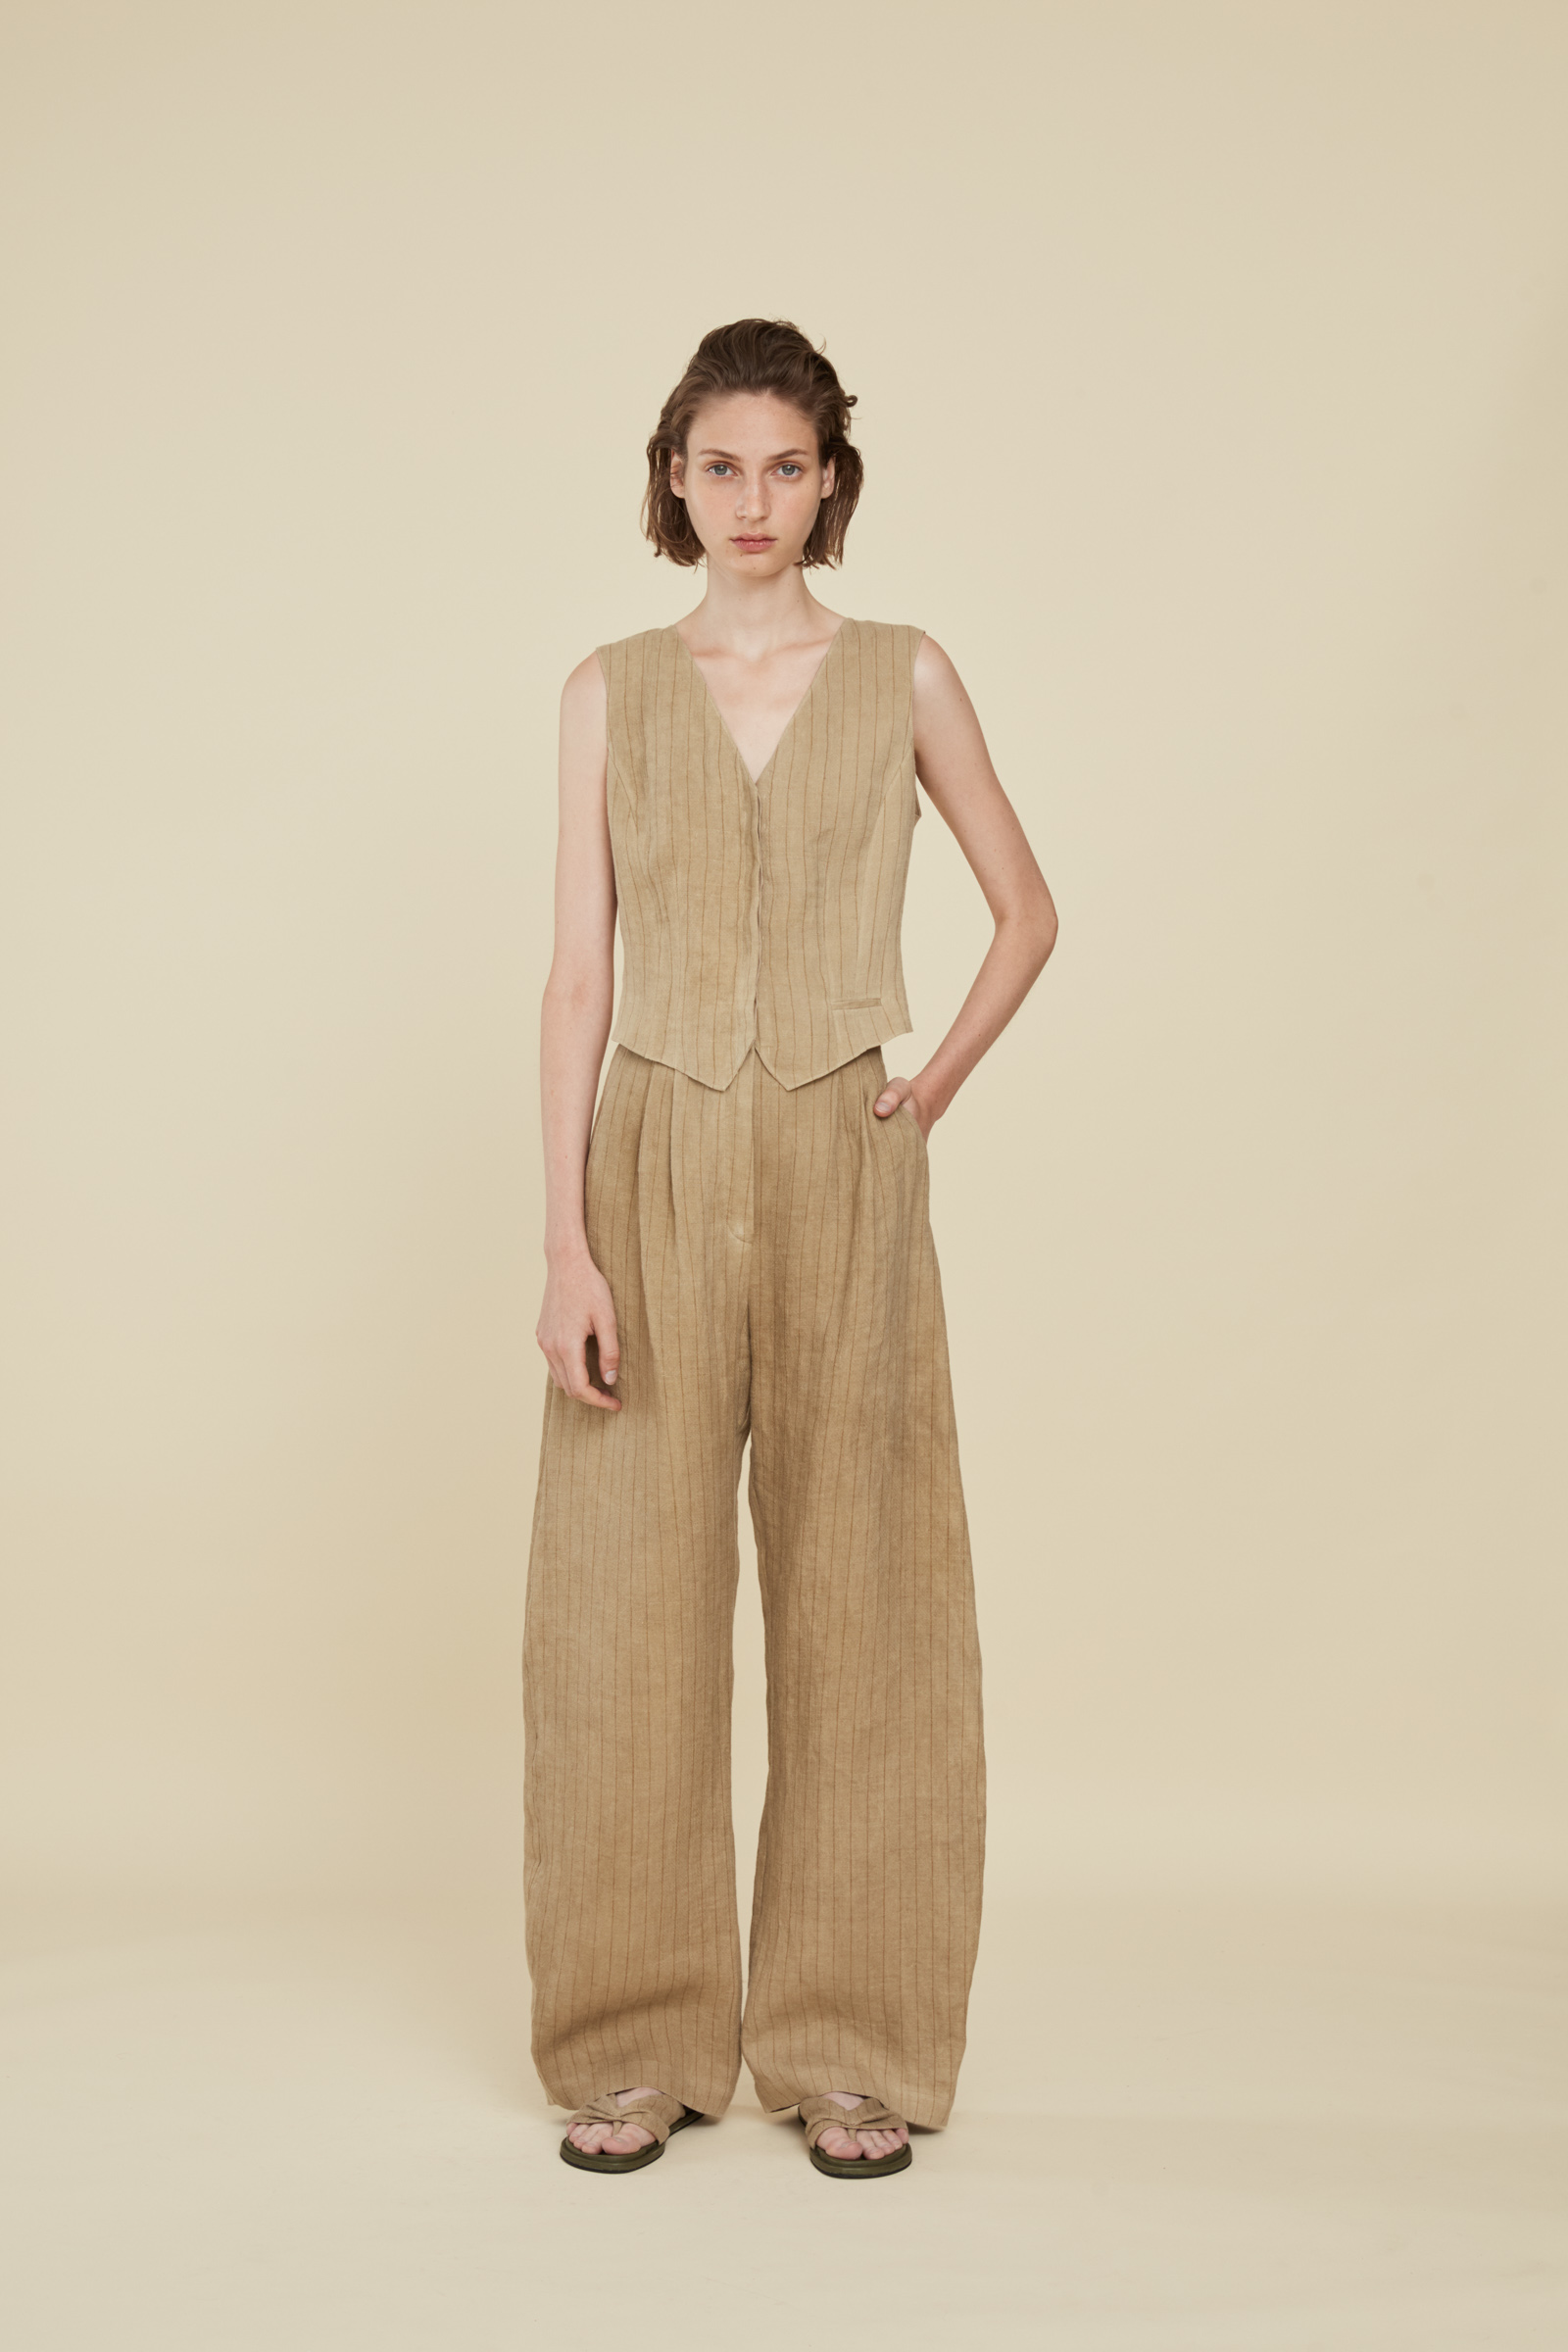 PAJA, STRIPED LINEN PANTS, ESHOP collection – Cortana Moda